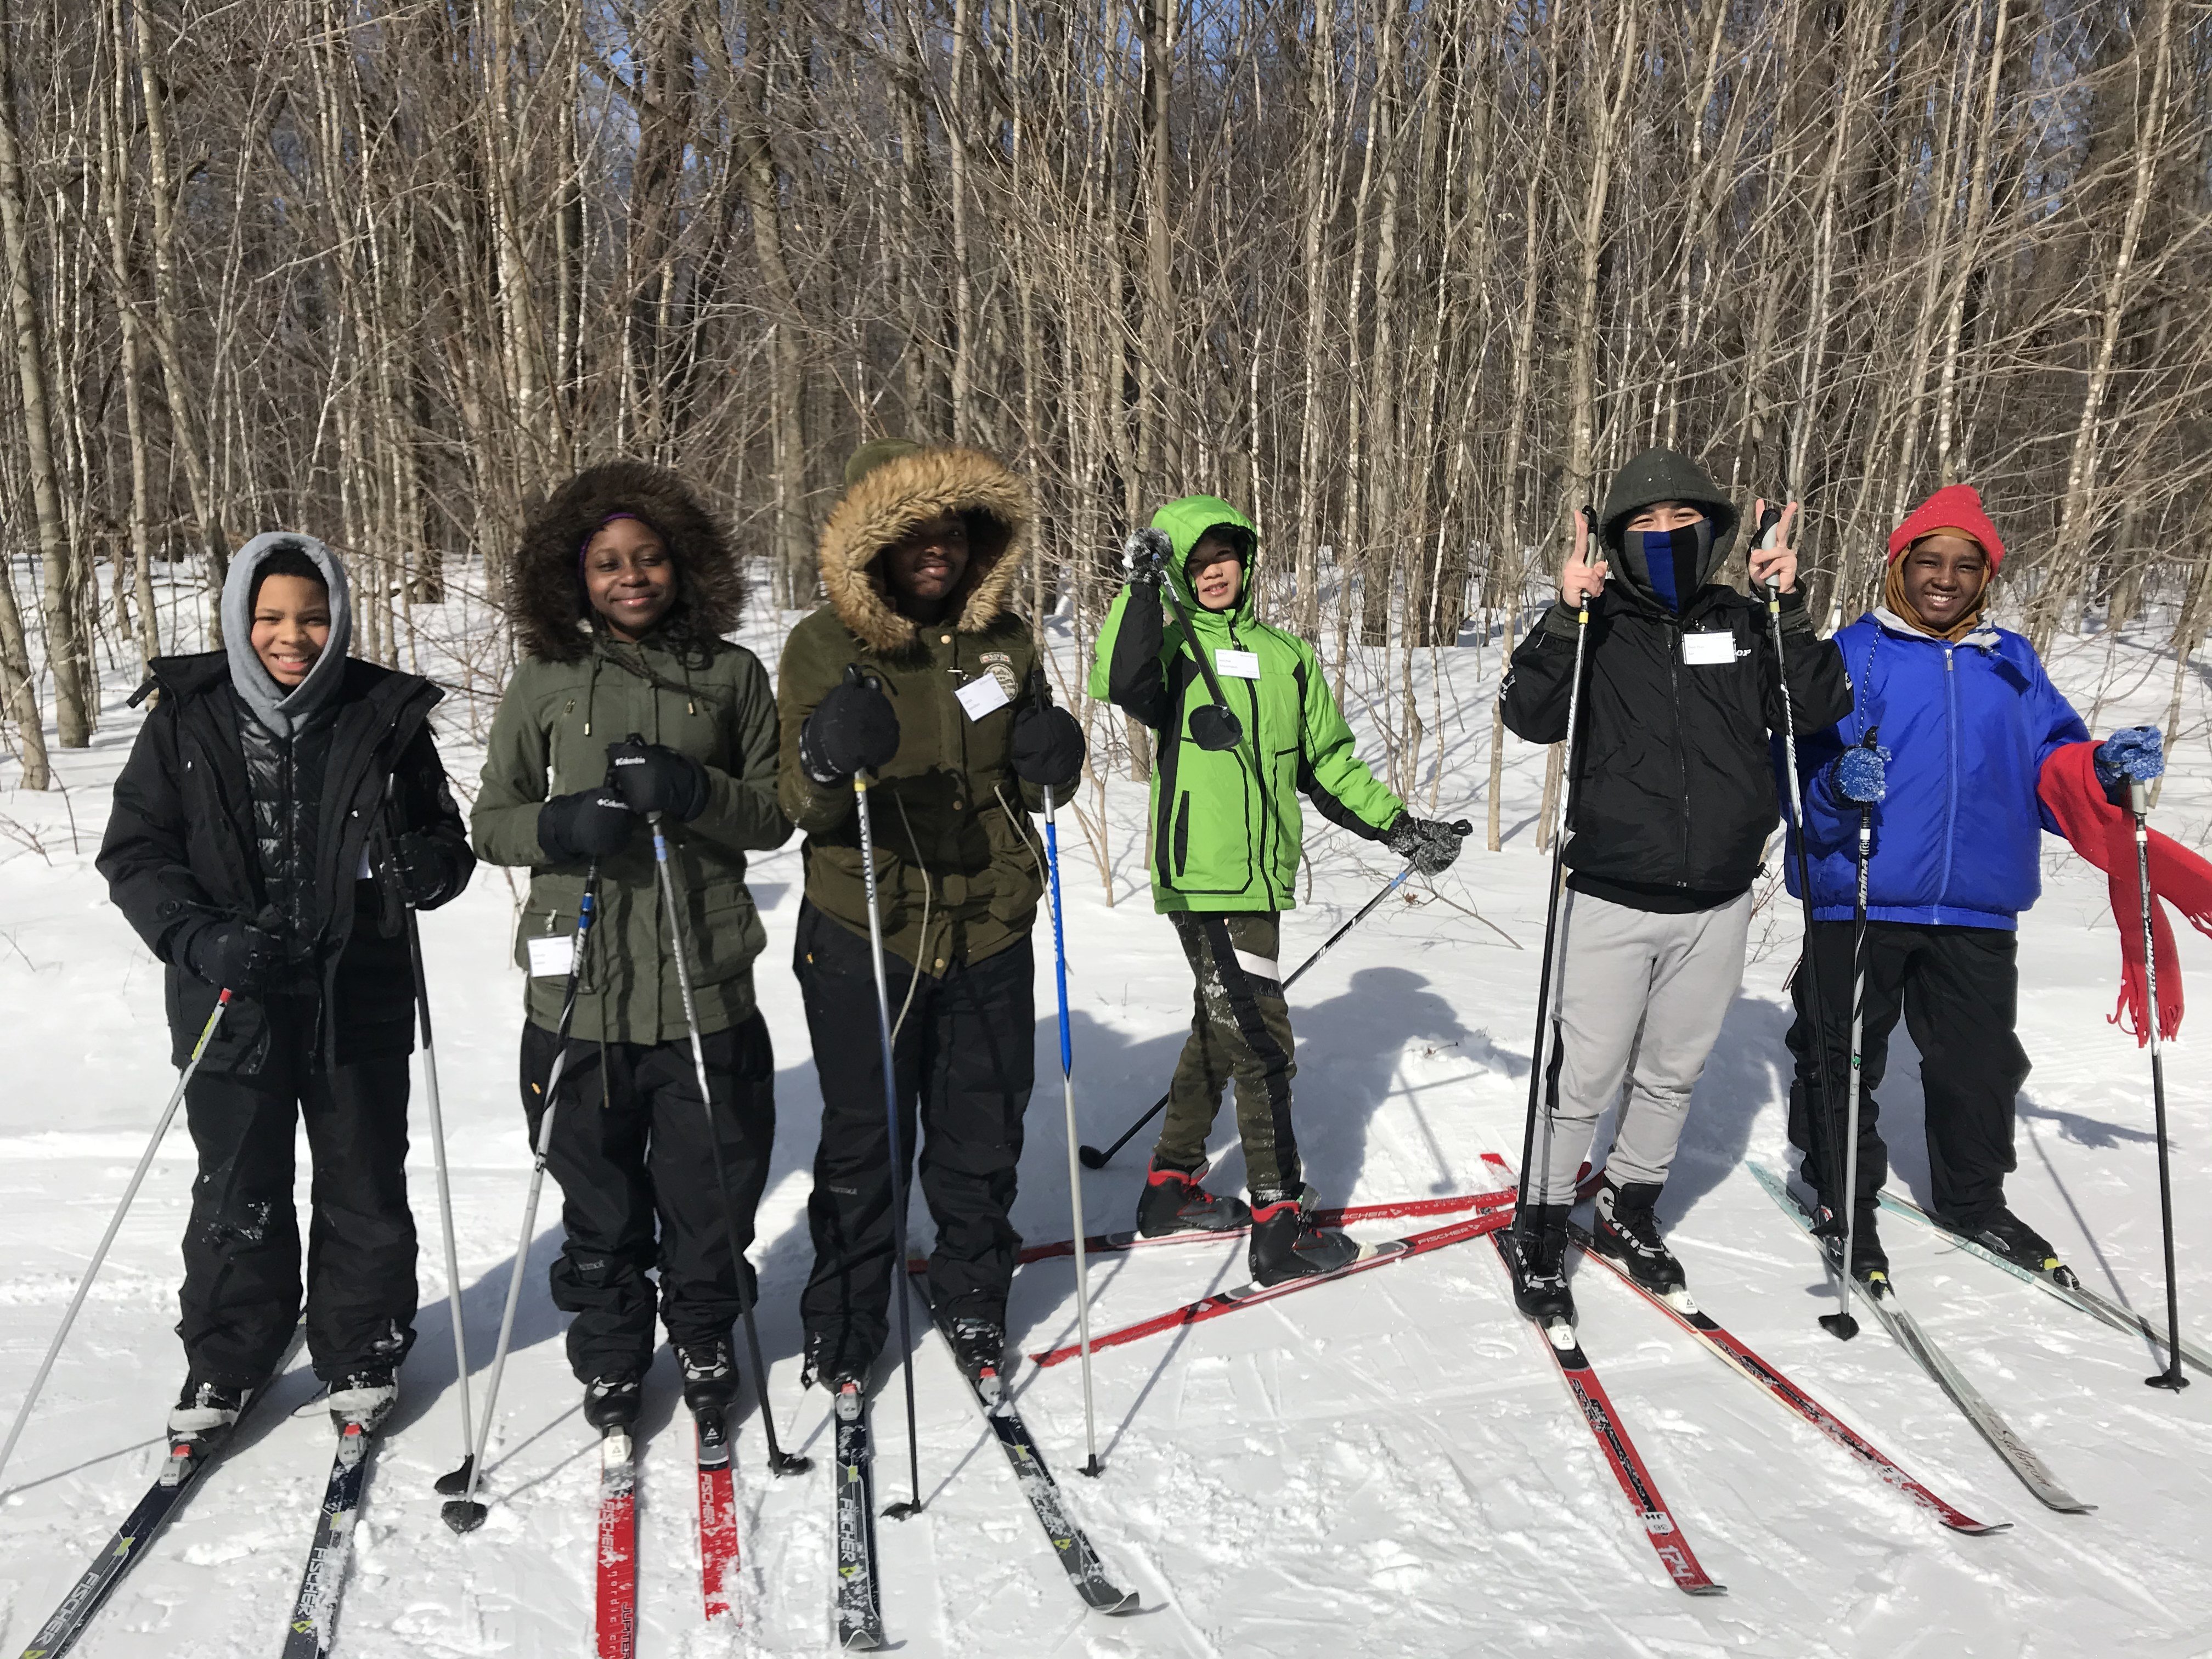 JFK students pose before cross-country skiing at Black River Outdoor Education Program